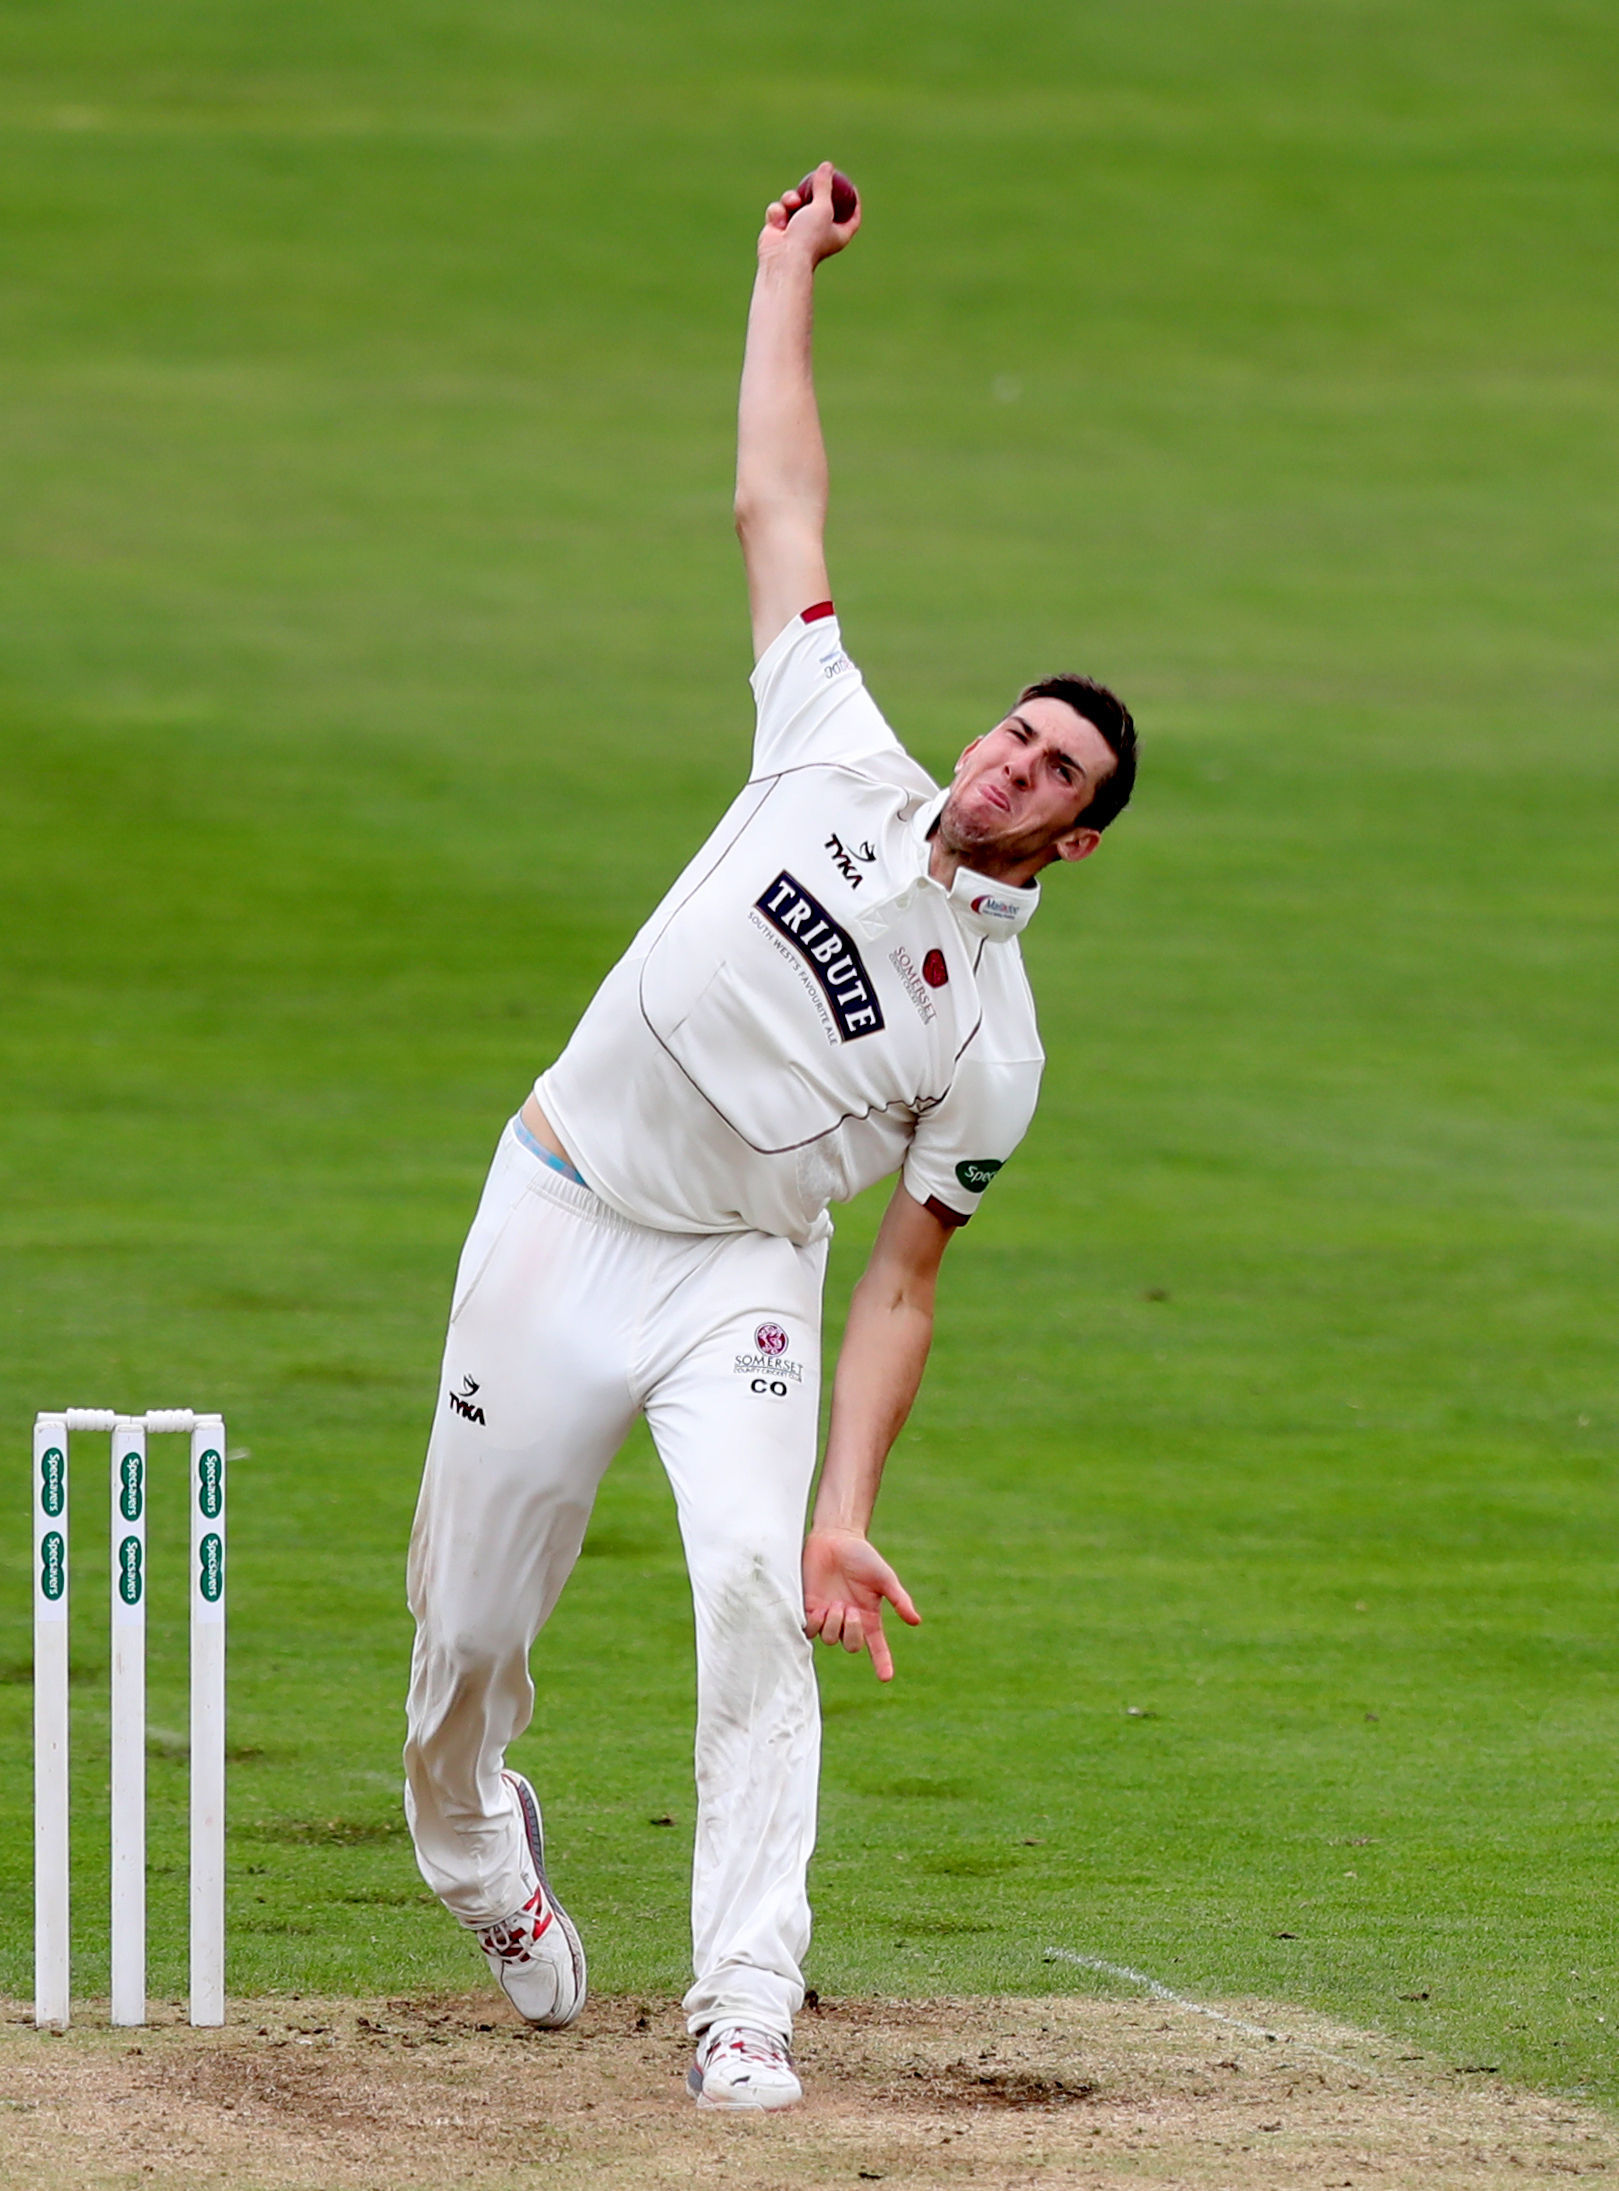 WAITING GAME: Somerset's Craig Overton will have to be patient having missed out on selection for the first Test. Pic: PA Wire